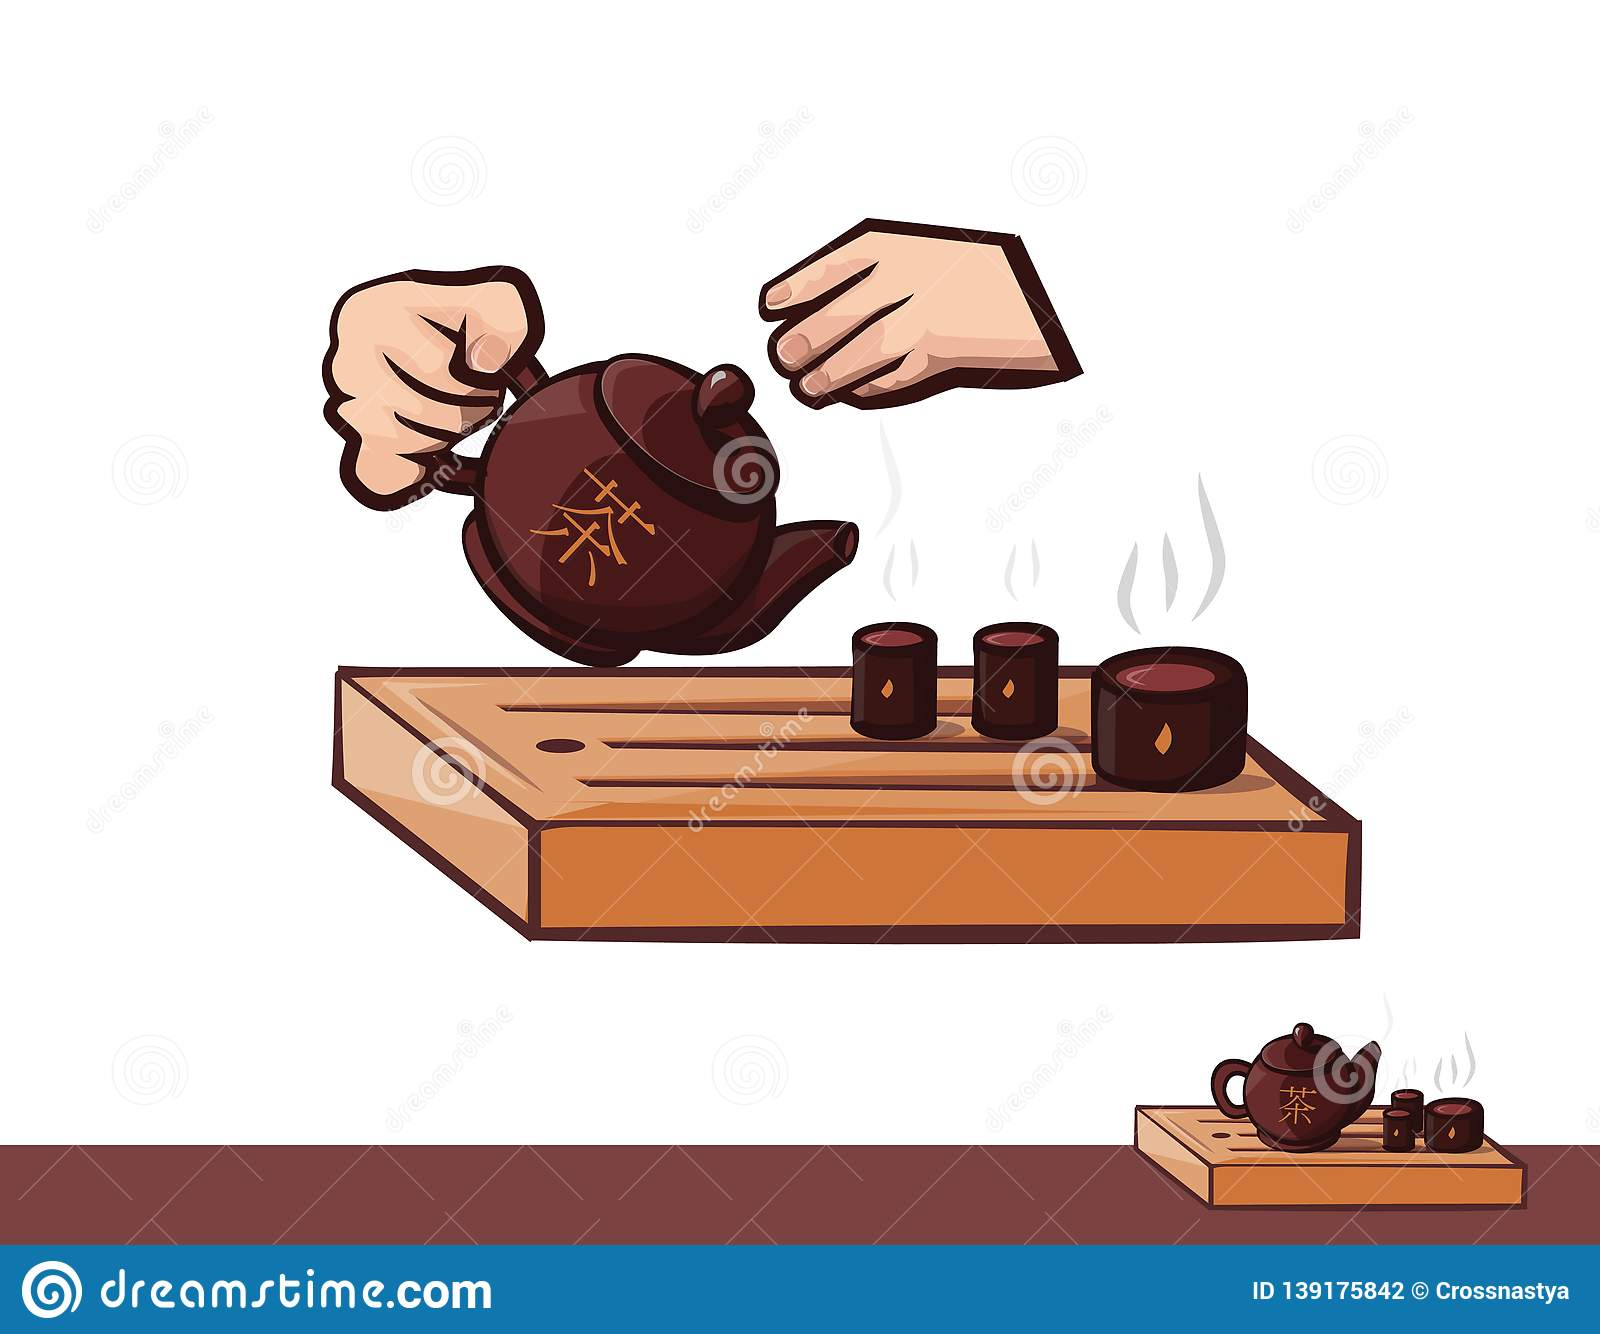 Tea ceremony. Clipart tea and hand. Teapot bowls ceramic and wood